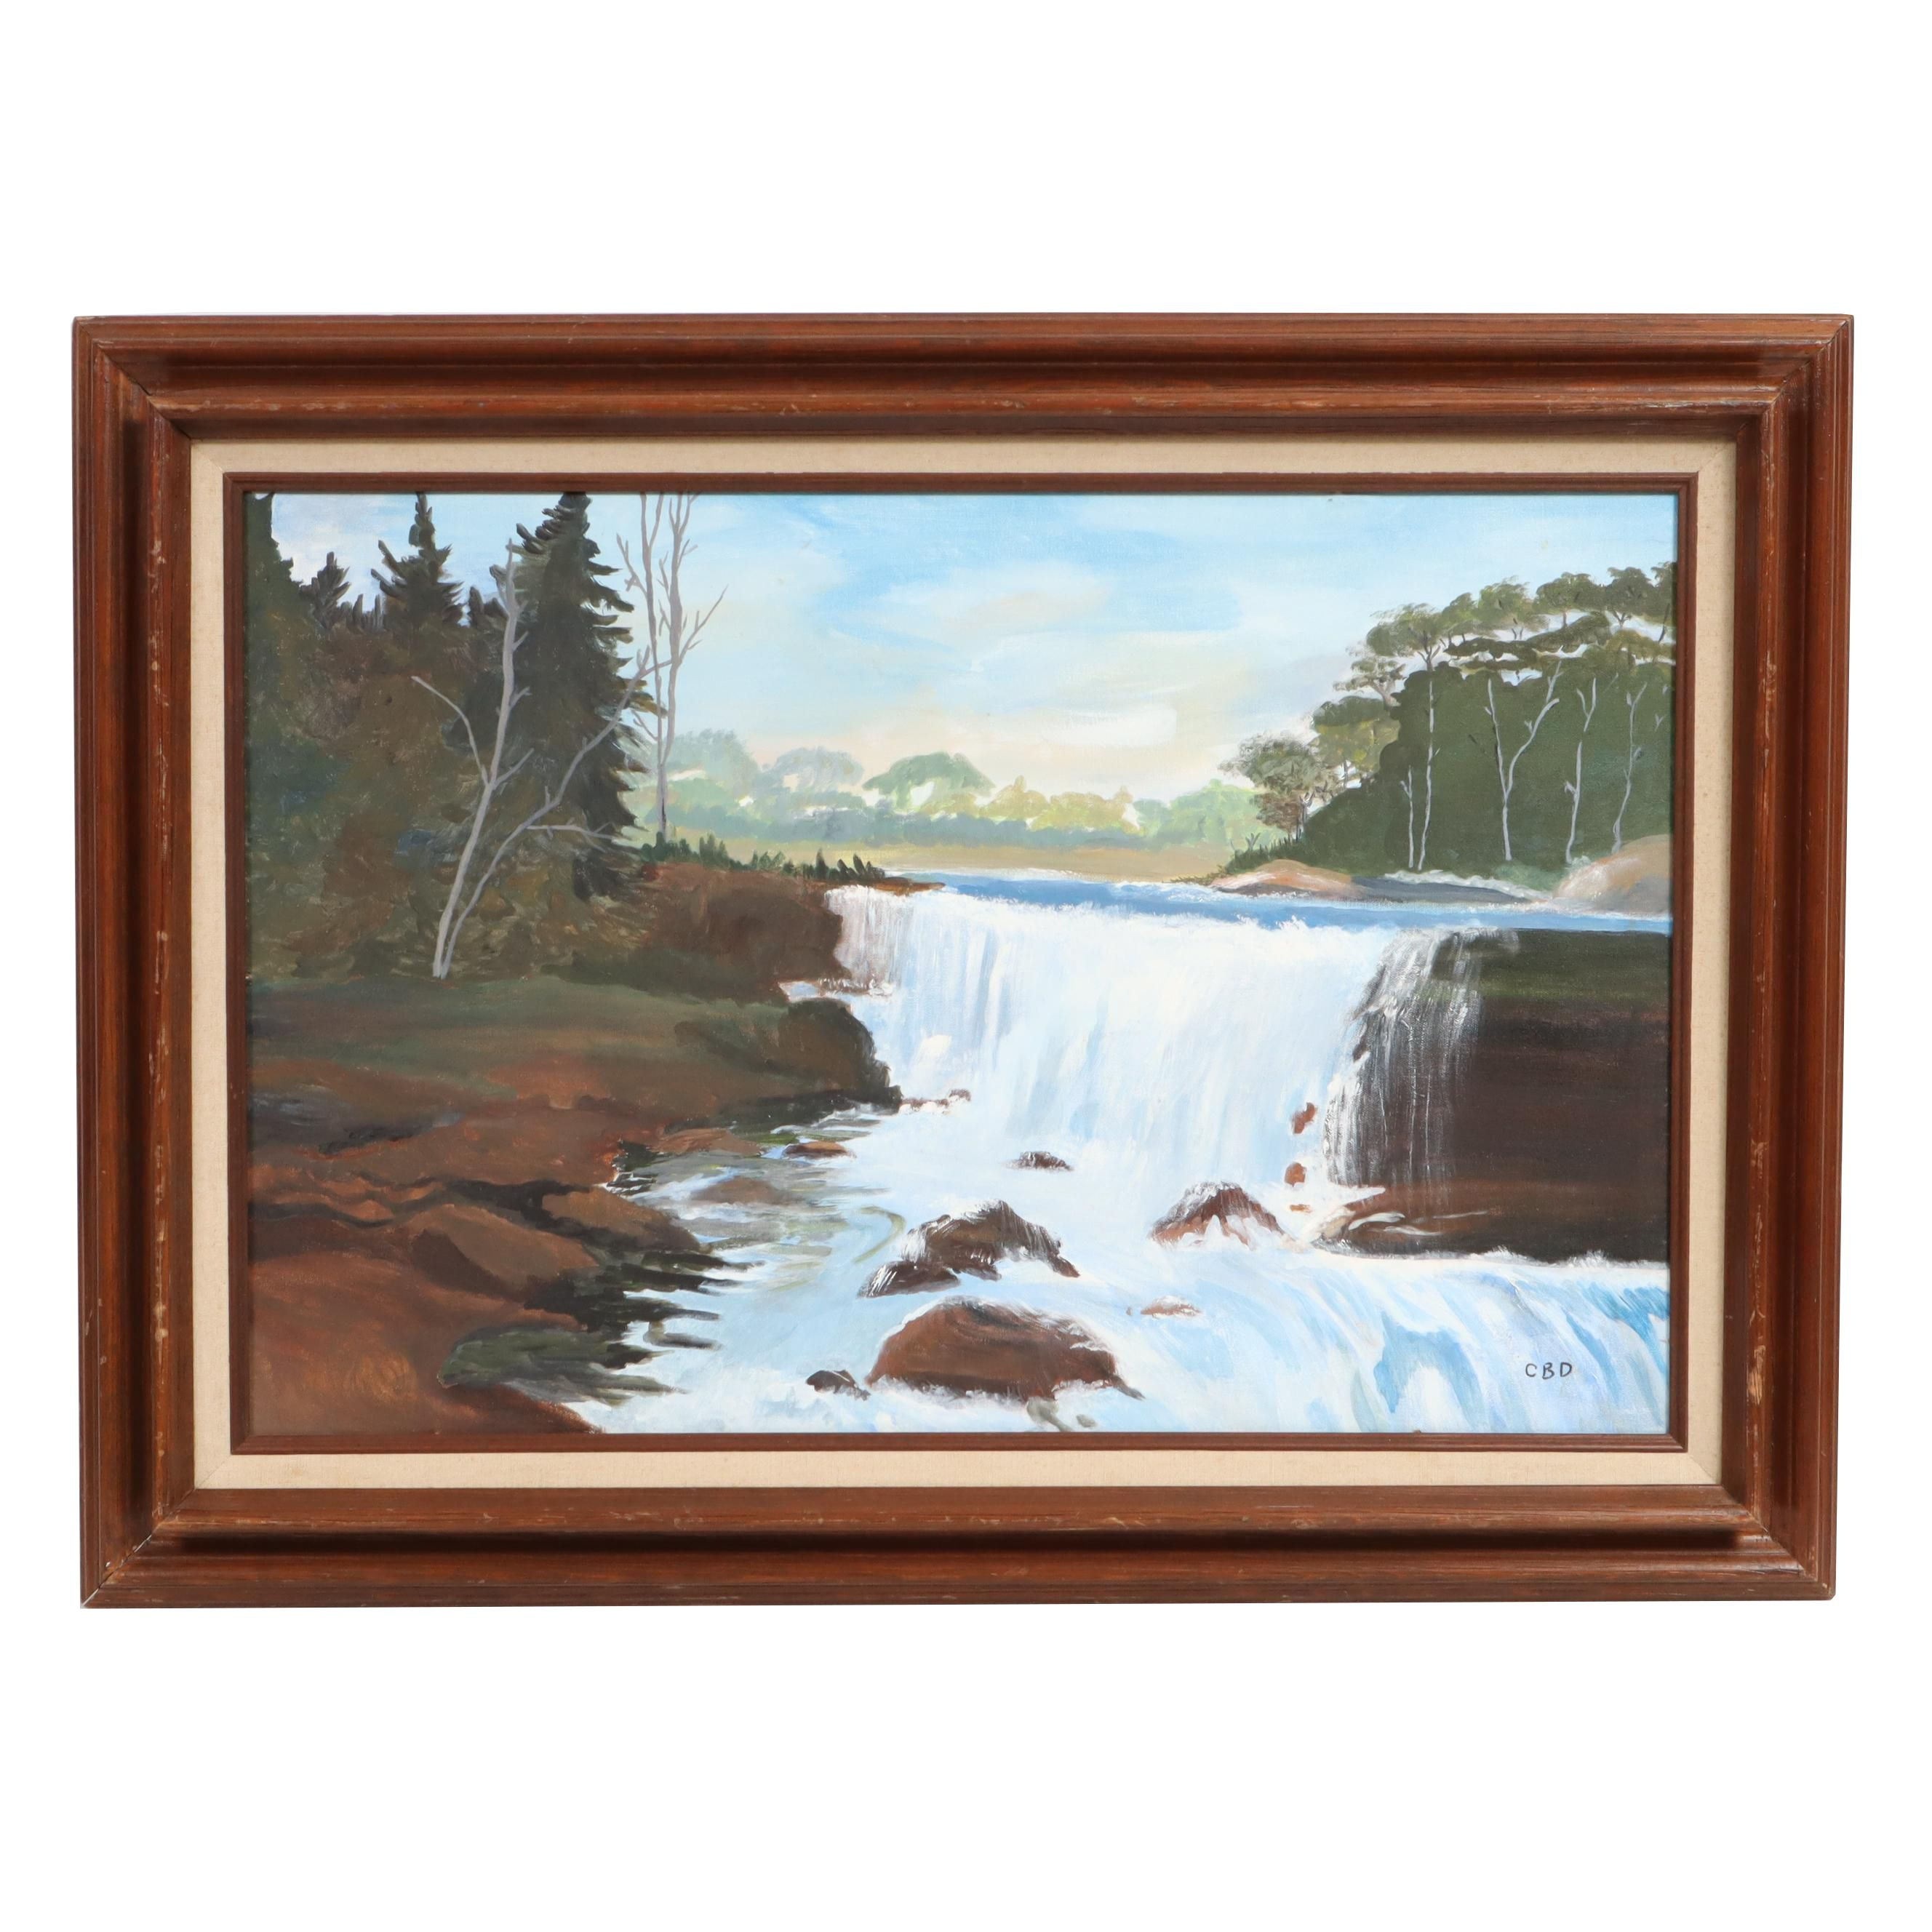 C. B. D. Waterfall Landscape Oil Painting